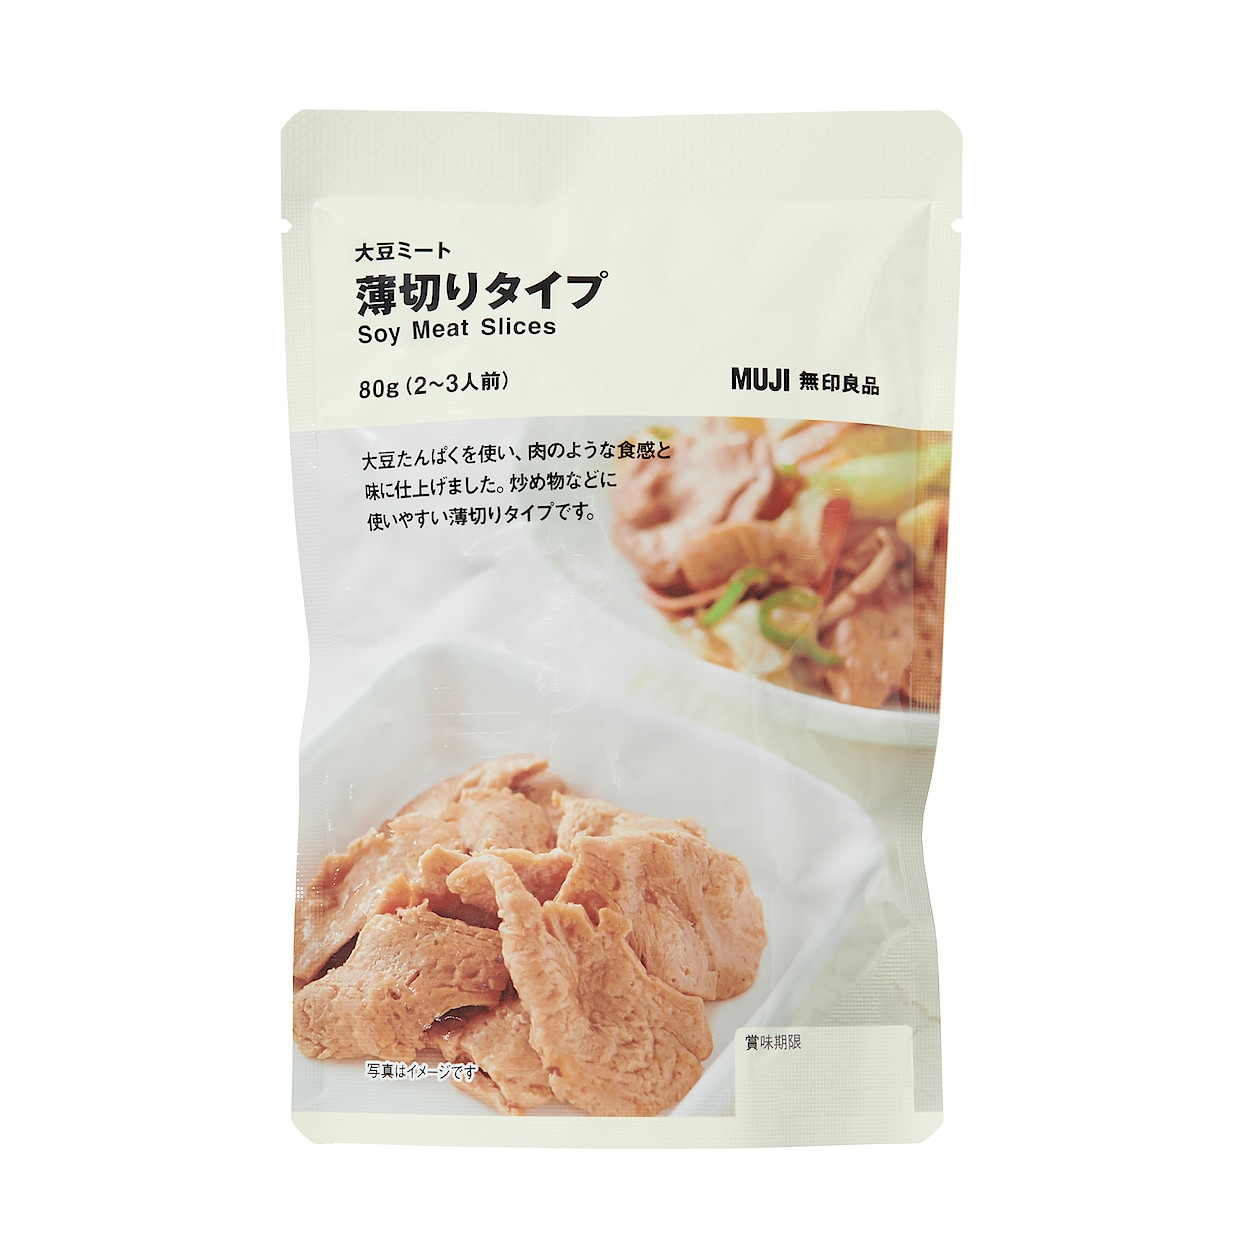 Muji Soy Meat Slices